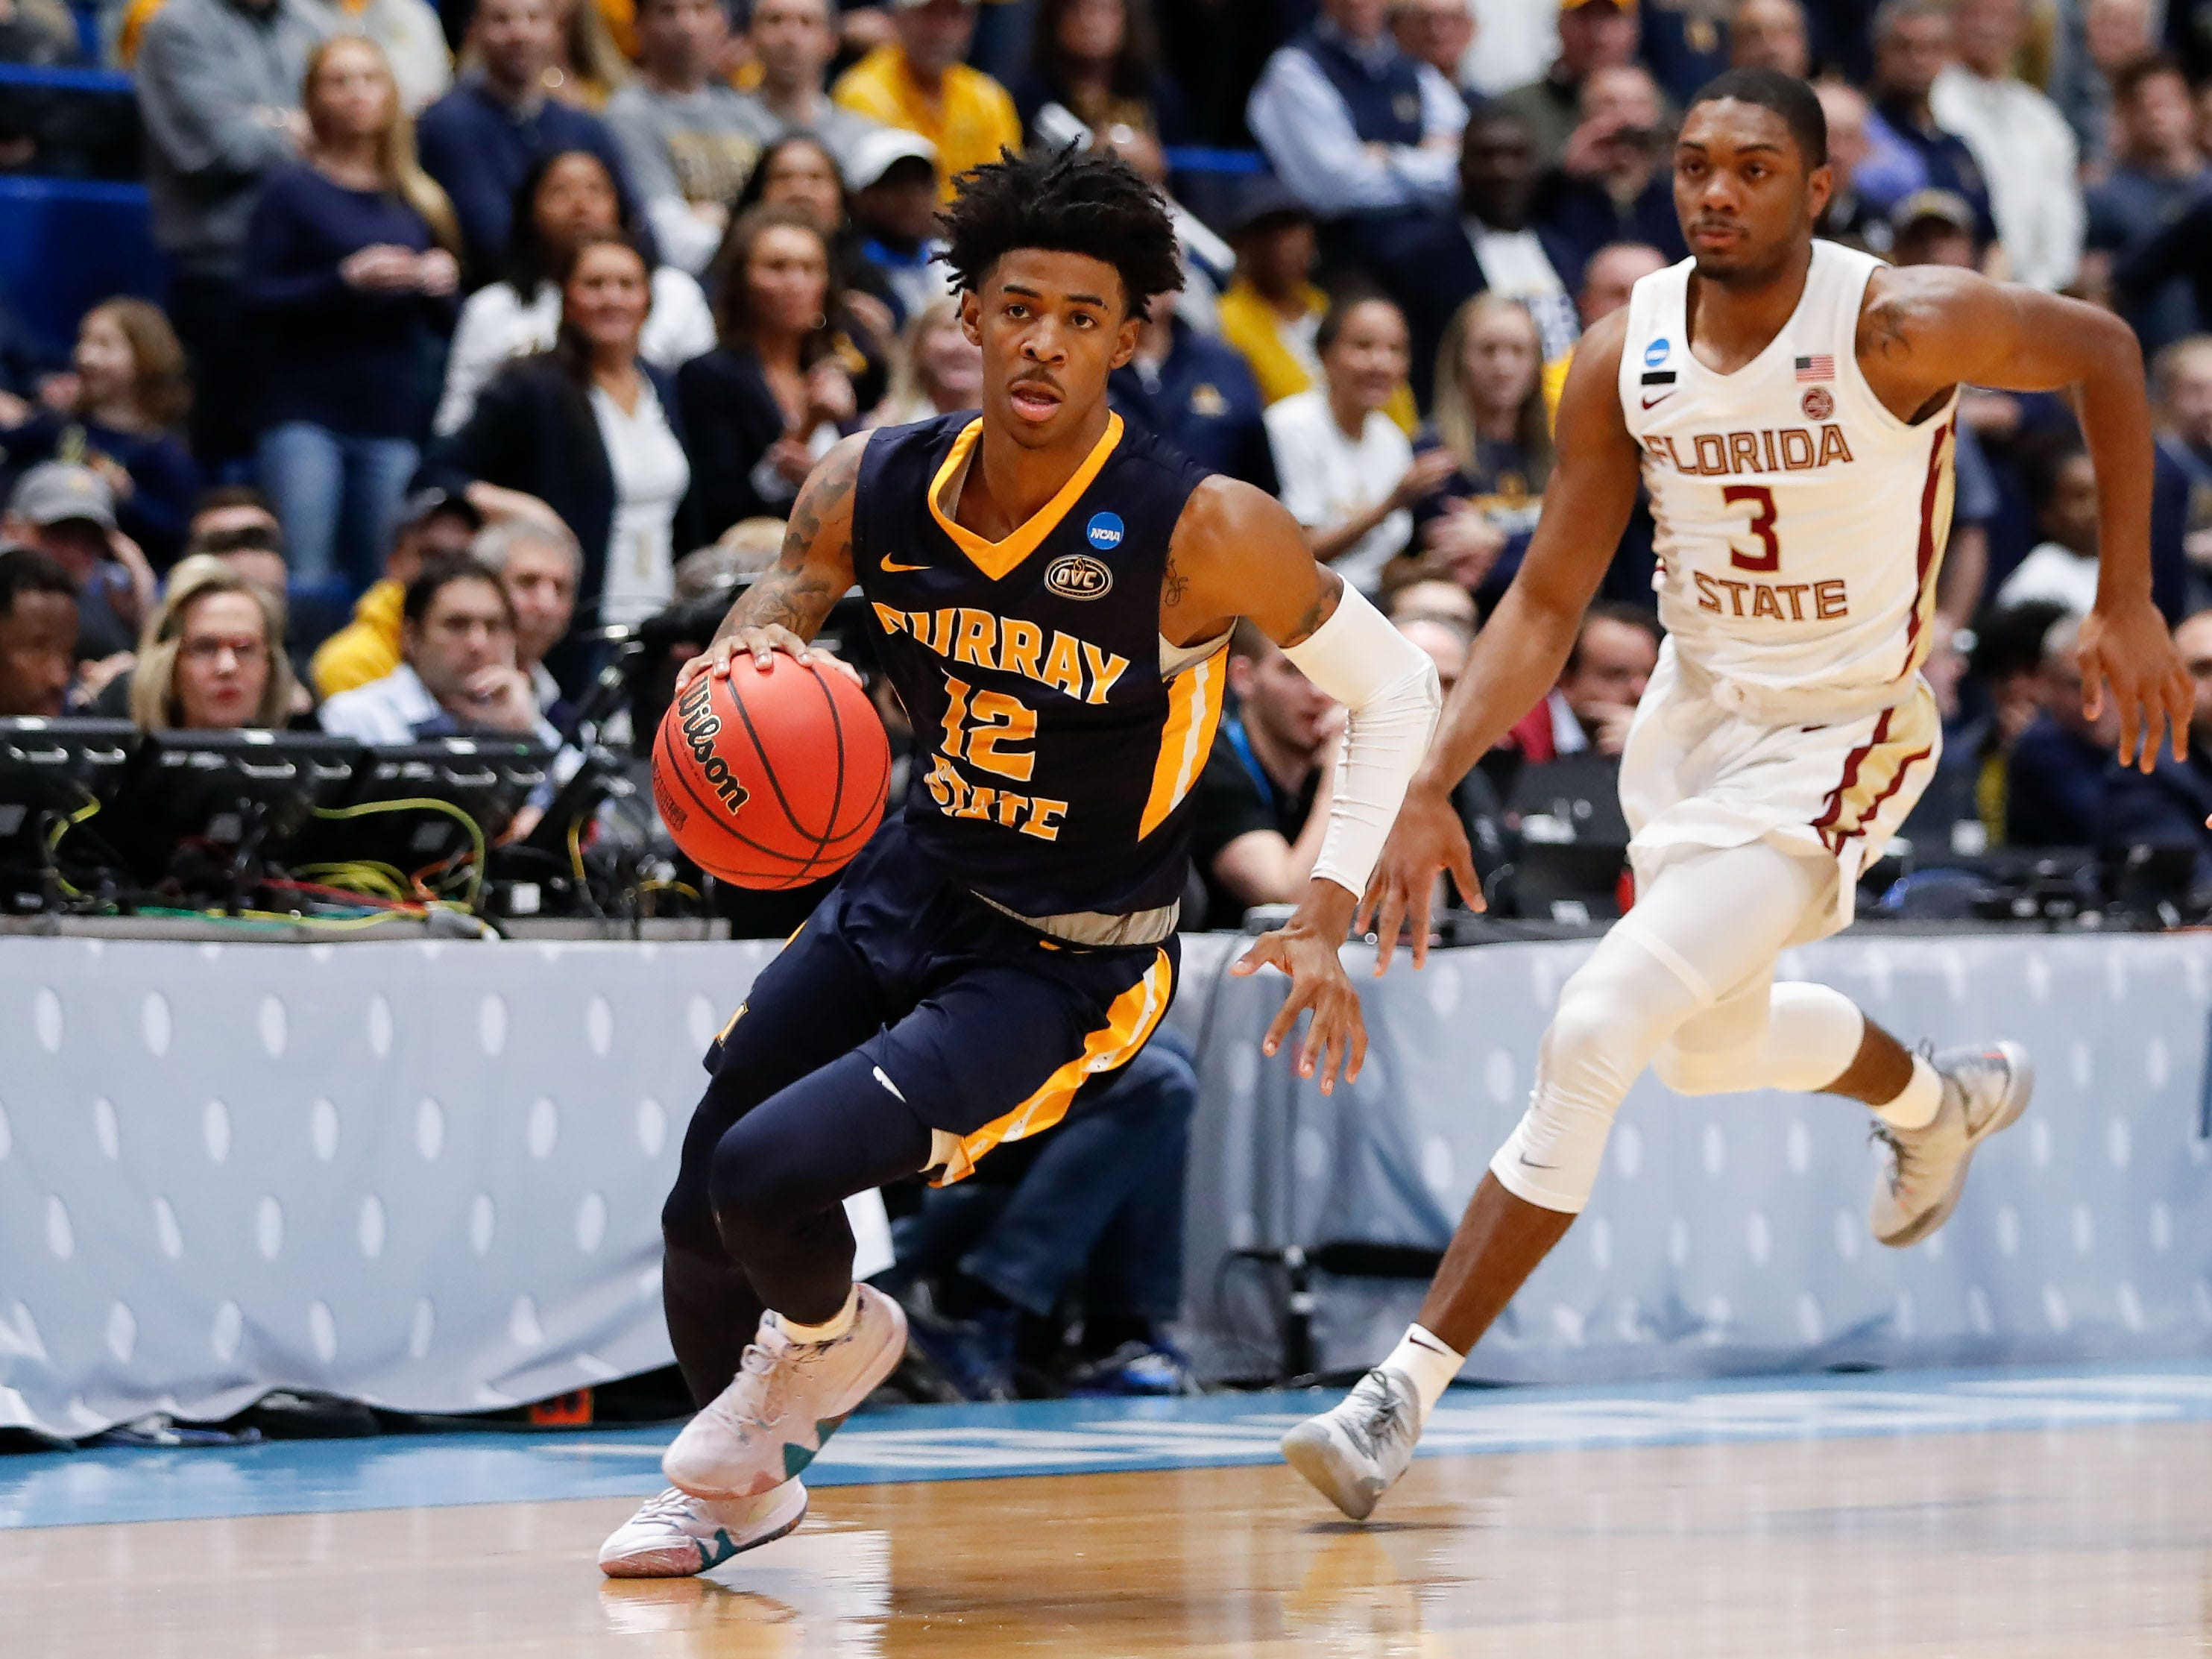 Mar 23, 2019; Hartford, CT, USA; Murray State Racers guard Ja Morant (12) dribbles the ball up the court in front of Florida State Seminoles guard Trent Forrest (3) during the first half of a game in the second round of the 2019 NCAA Tournament at XL Center. Mandatory Credit: David Butler II-USA TODAY Sports